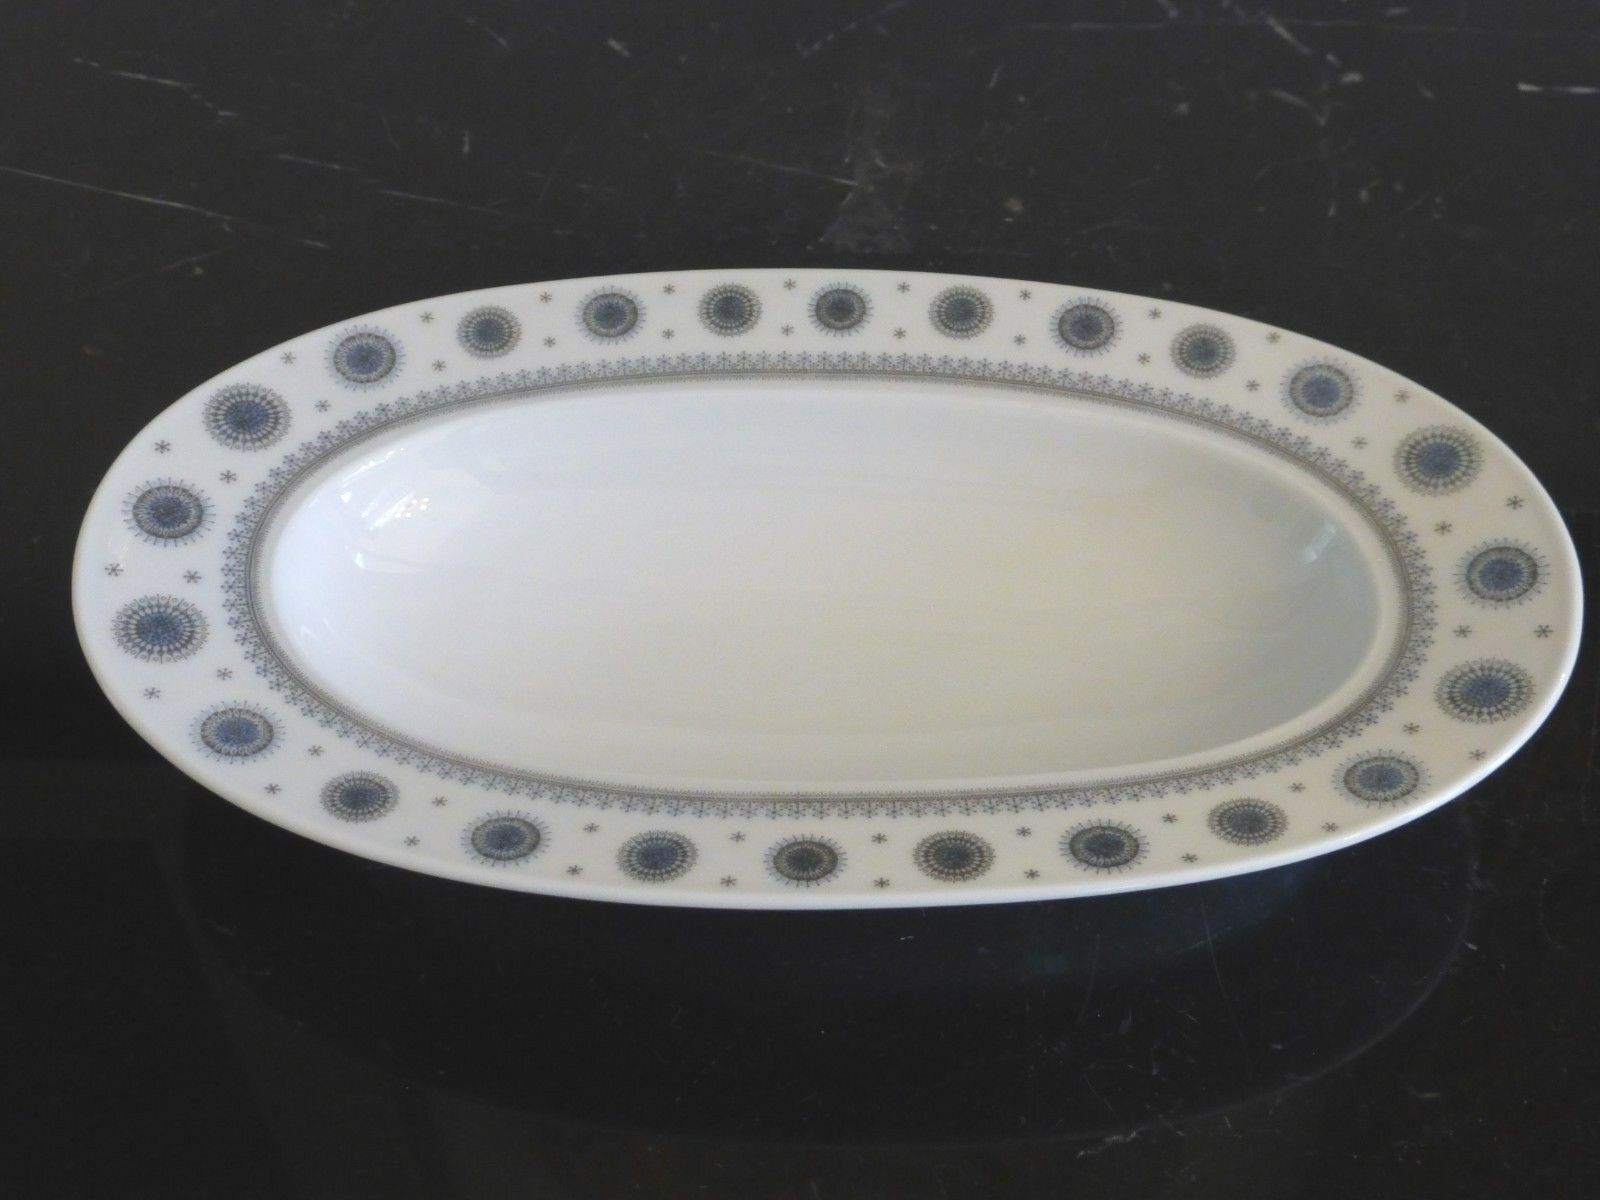 "Primary image for ROSENTHAL TAPIO WIRKKALA ICE BLOSSOM 1960S OVAL DISH BOWL 9.5"" LONG"